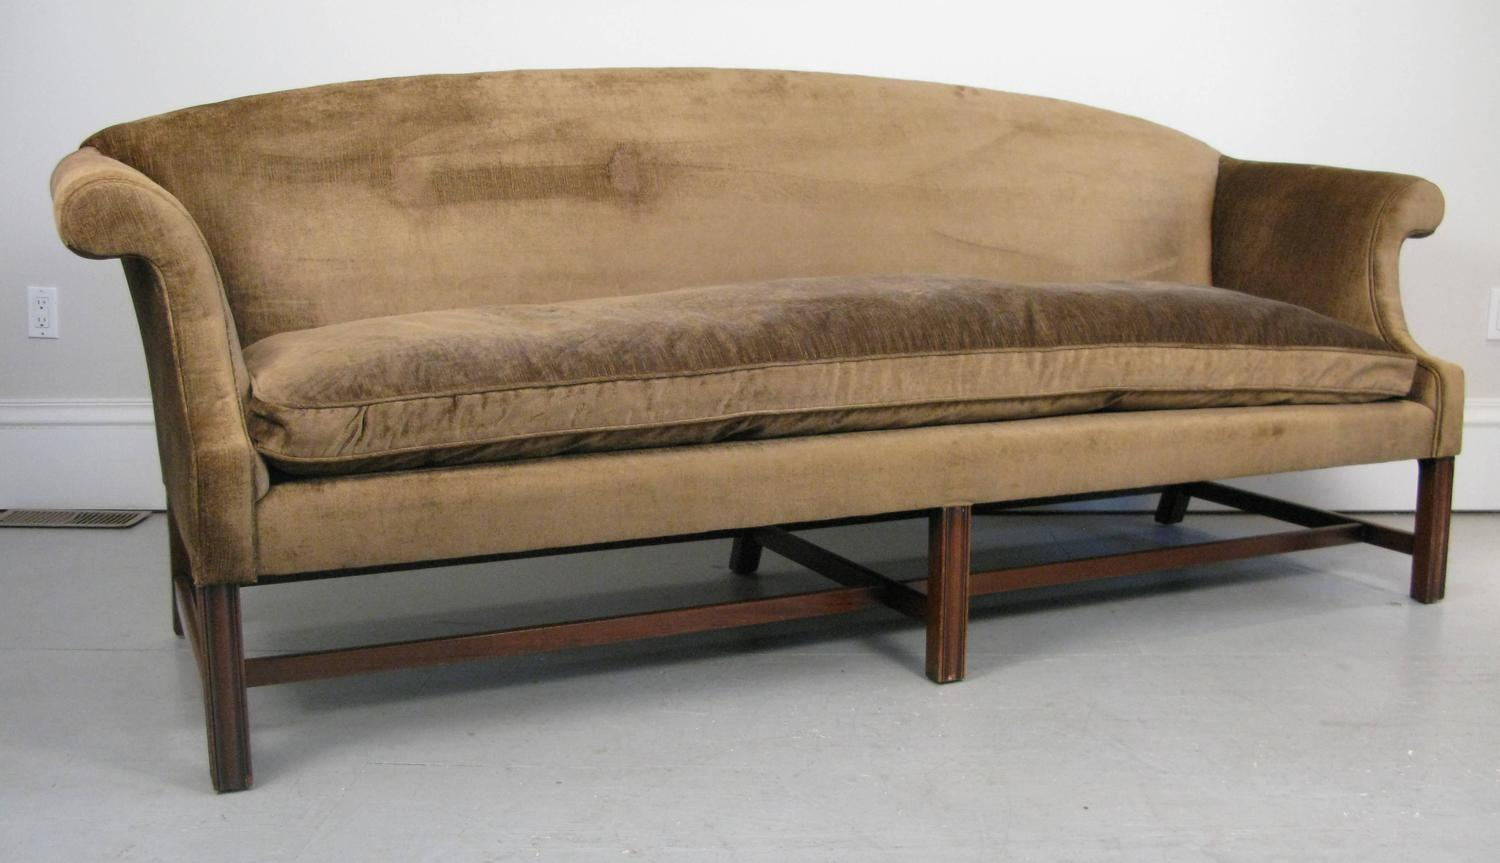 a sofa in the forties flou book transformer bed 1940s kittinger co georgian style at 1stdibs